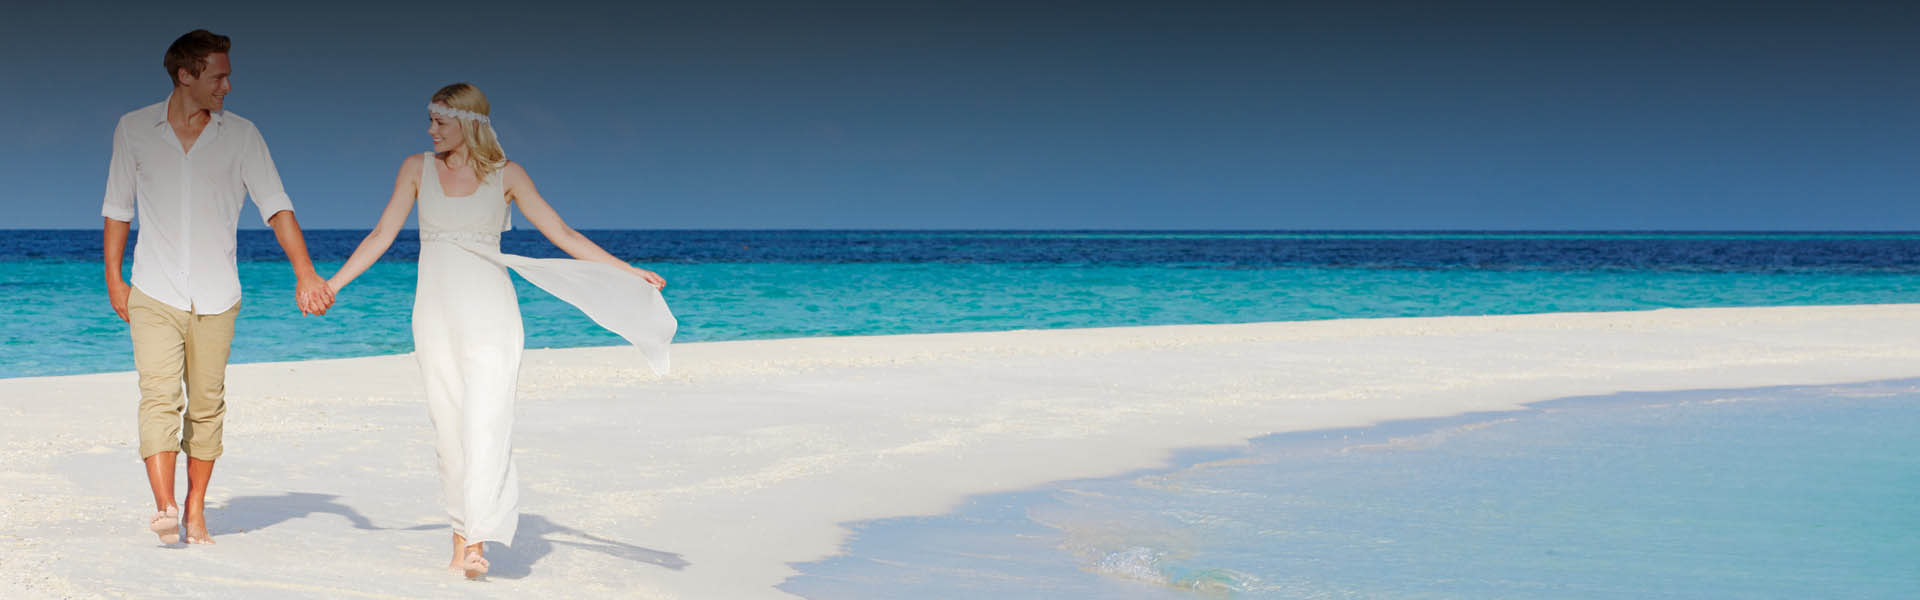 Anantara Dhigu Family Resort Weddings